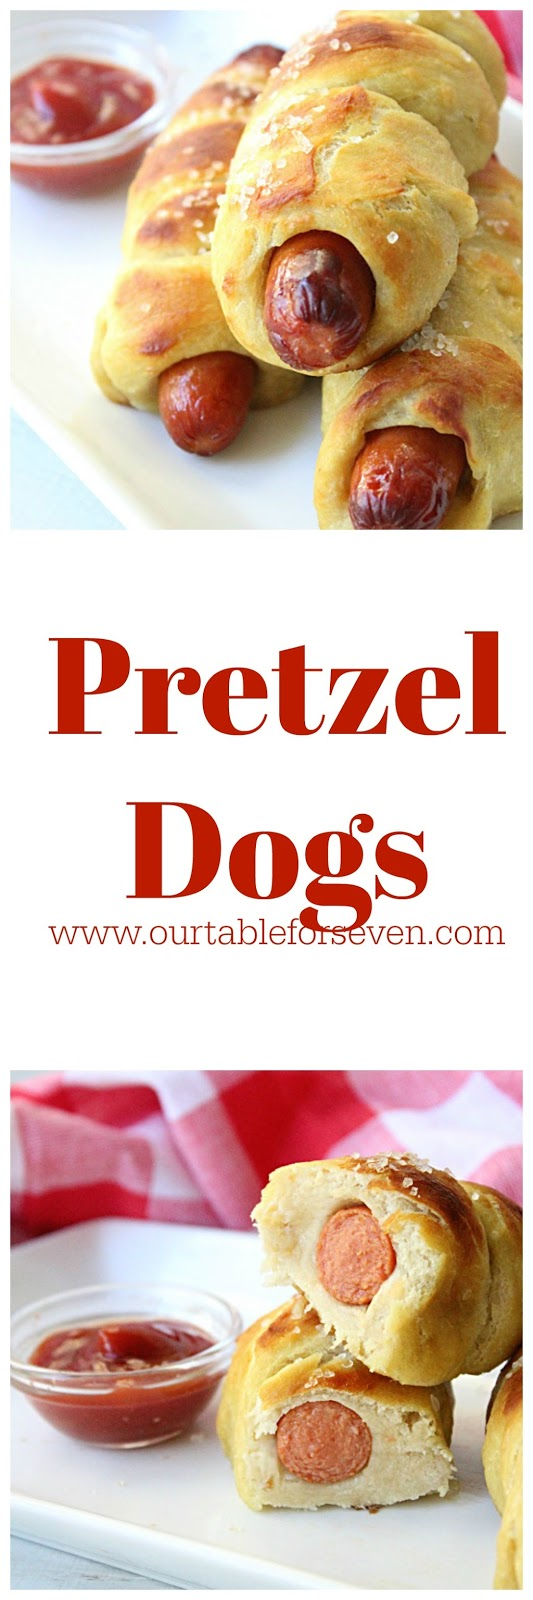 Pretzel Dogs from Table for Seven